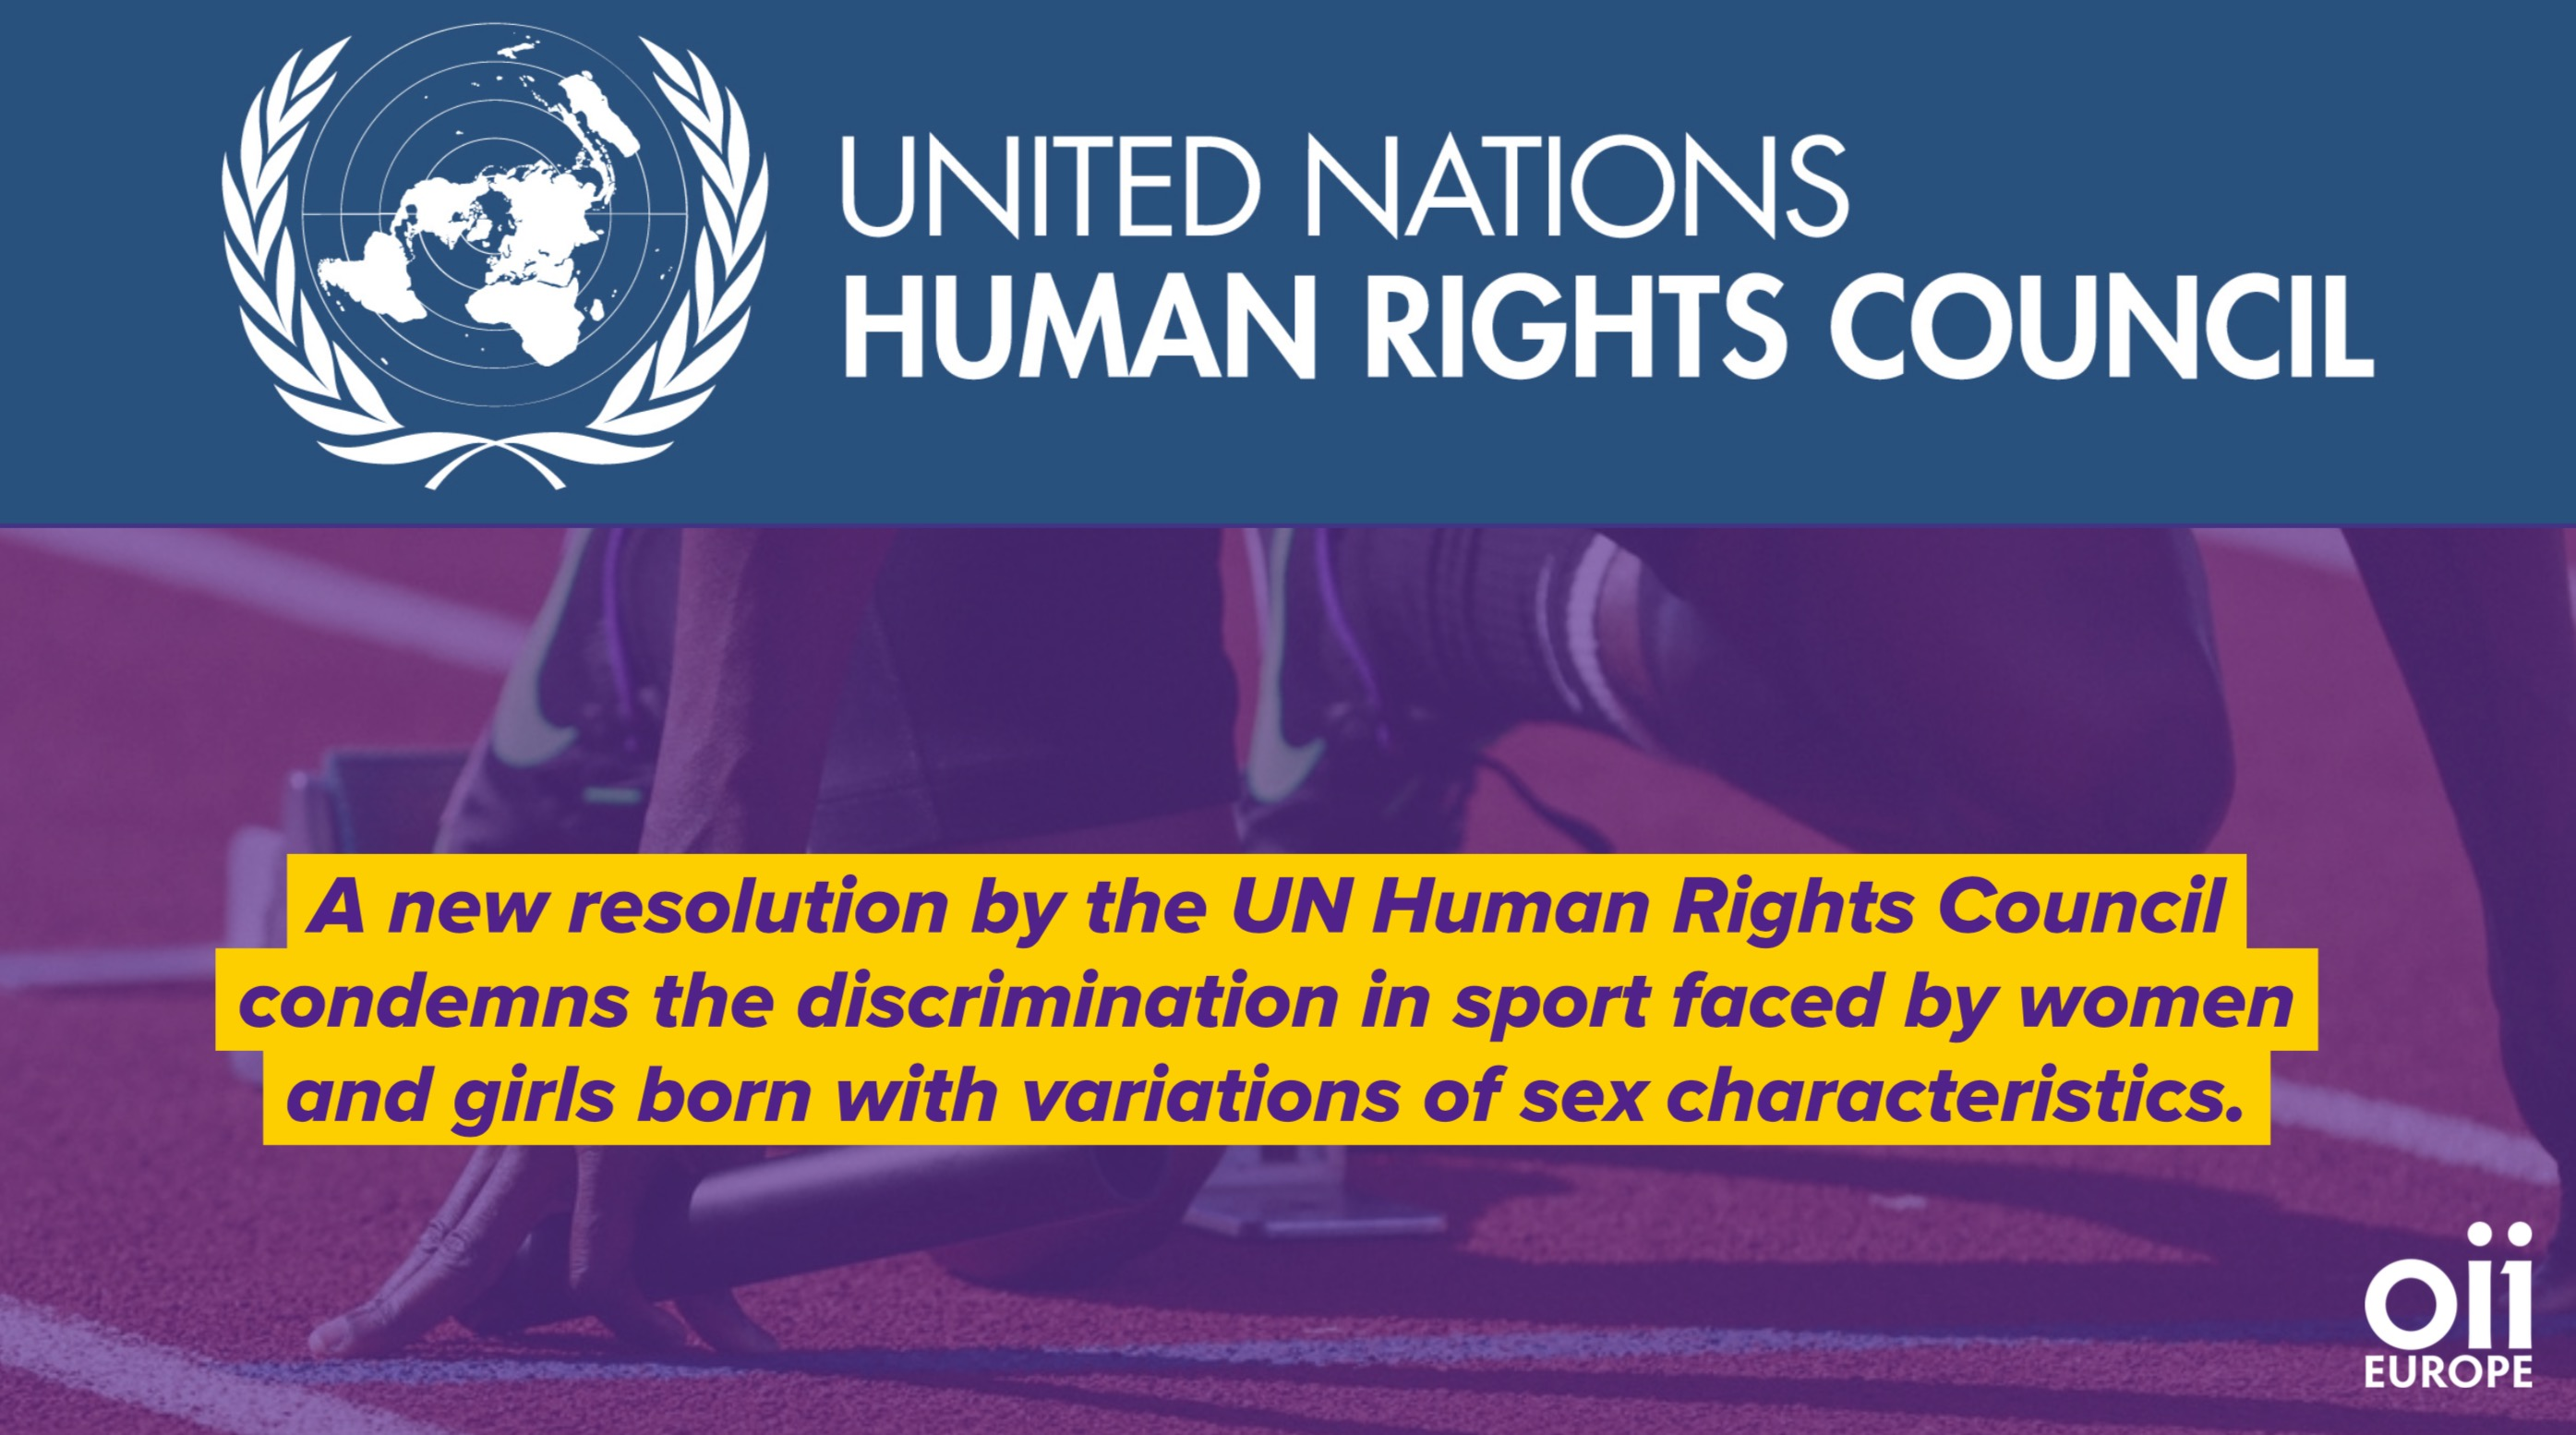 A groundbreaking resolution has been adopted by the UN Human Rights Council on the elimination of discrimination against women and girls in sport.